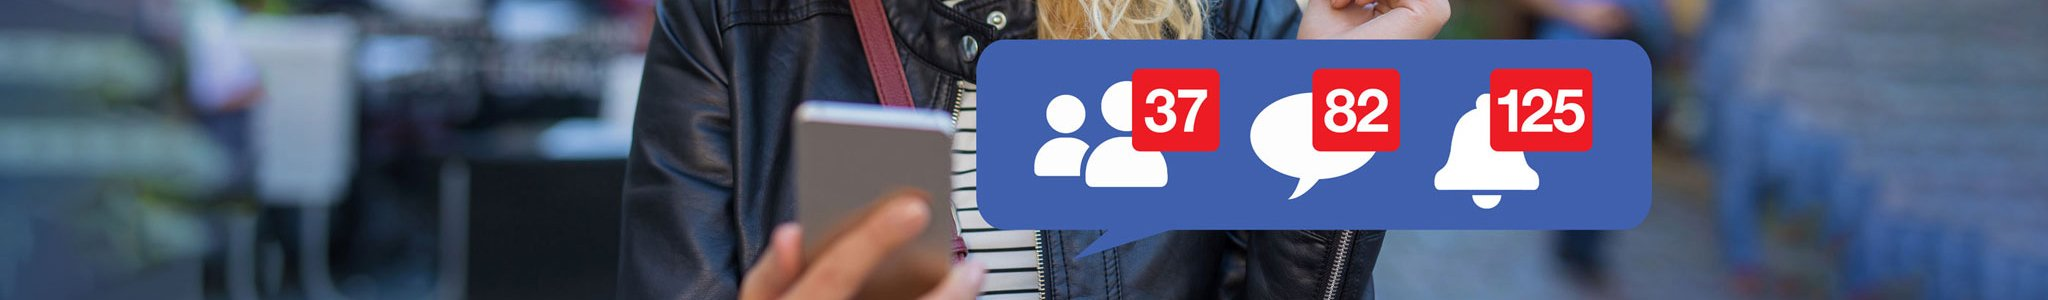 Facebook notifications and number of likes